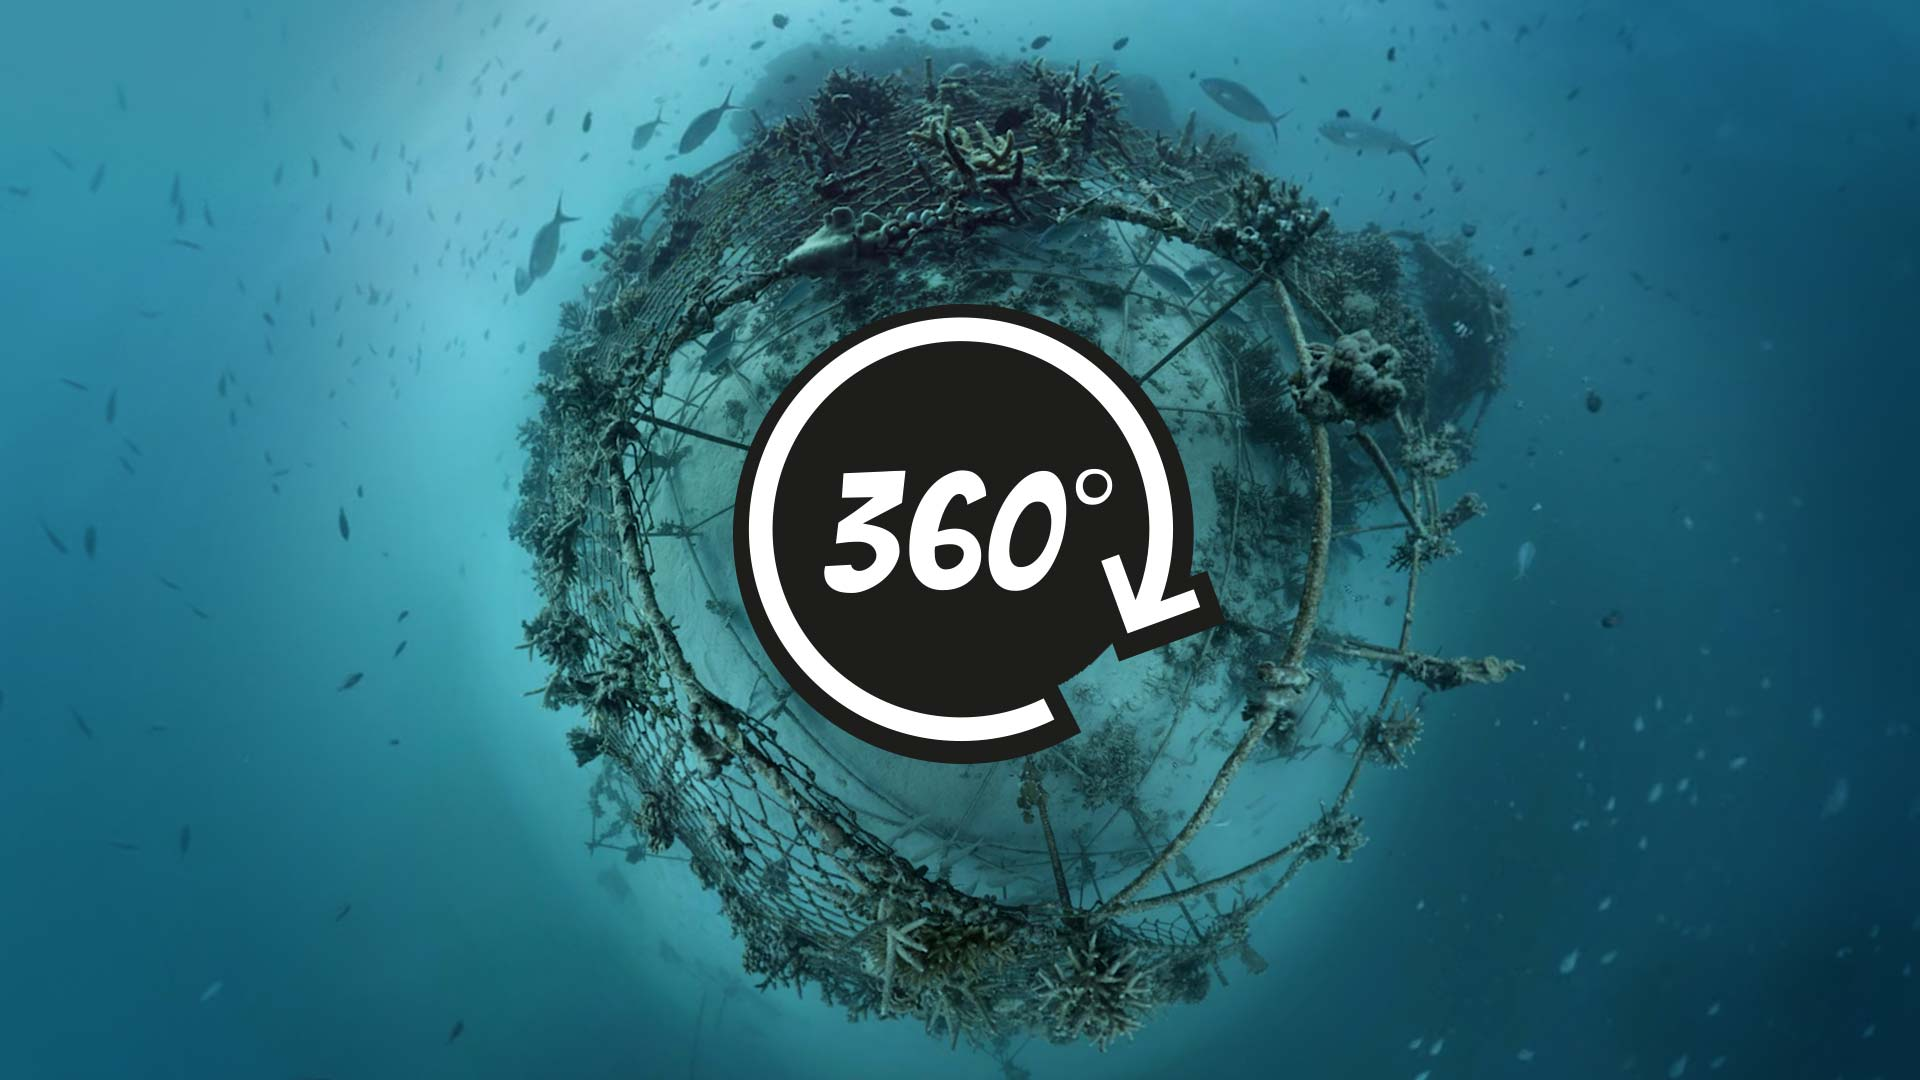 360 underwater video of a Biorock reef